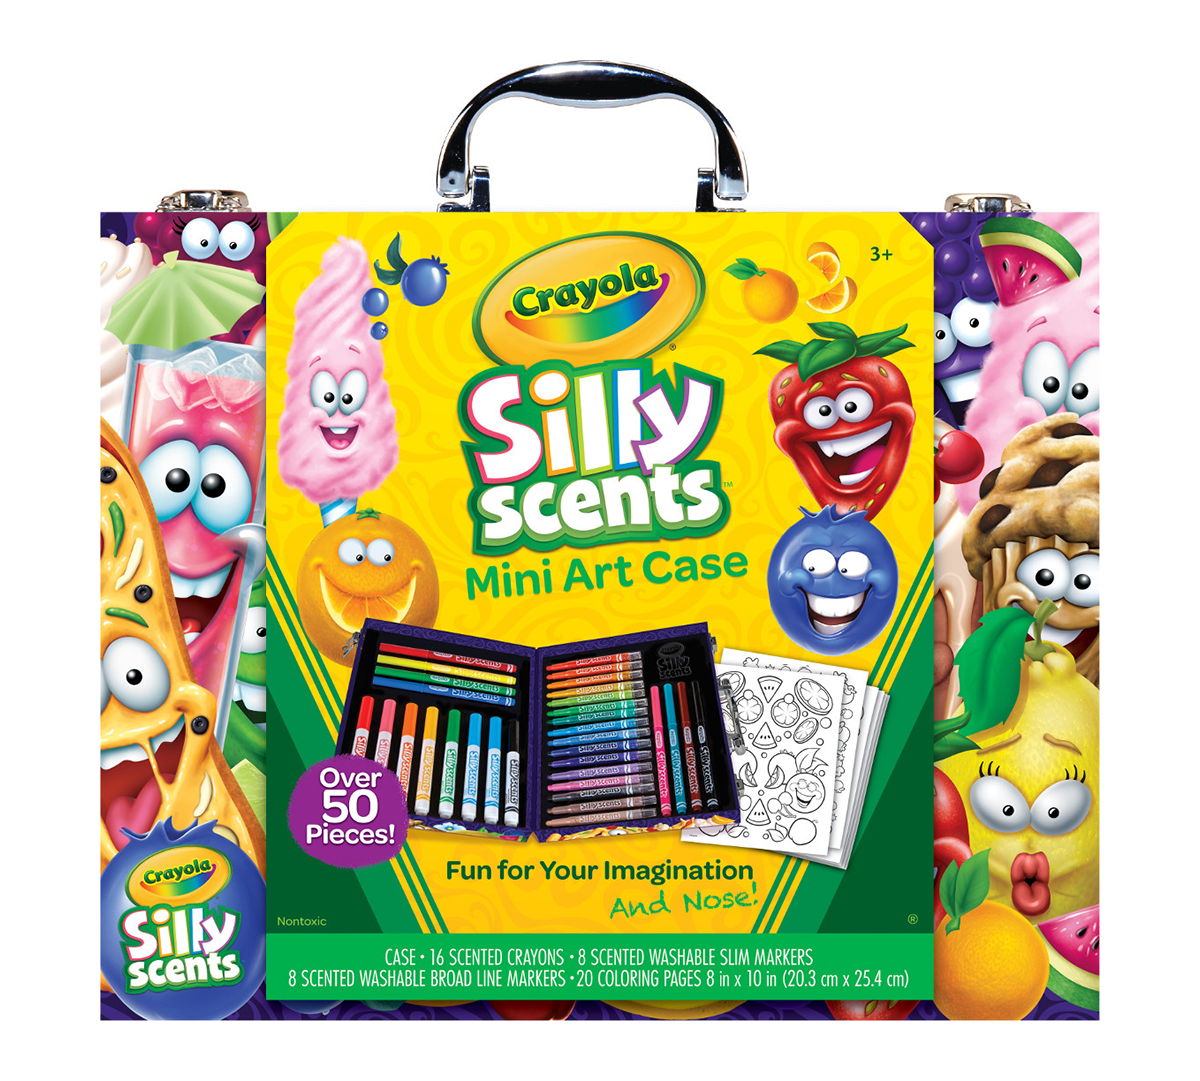 NEW Crayola Kids at Work 50 Piece Learn n Play Set Blocks Crayons Backpack Toy